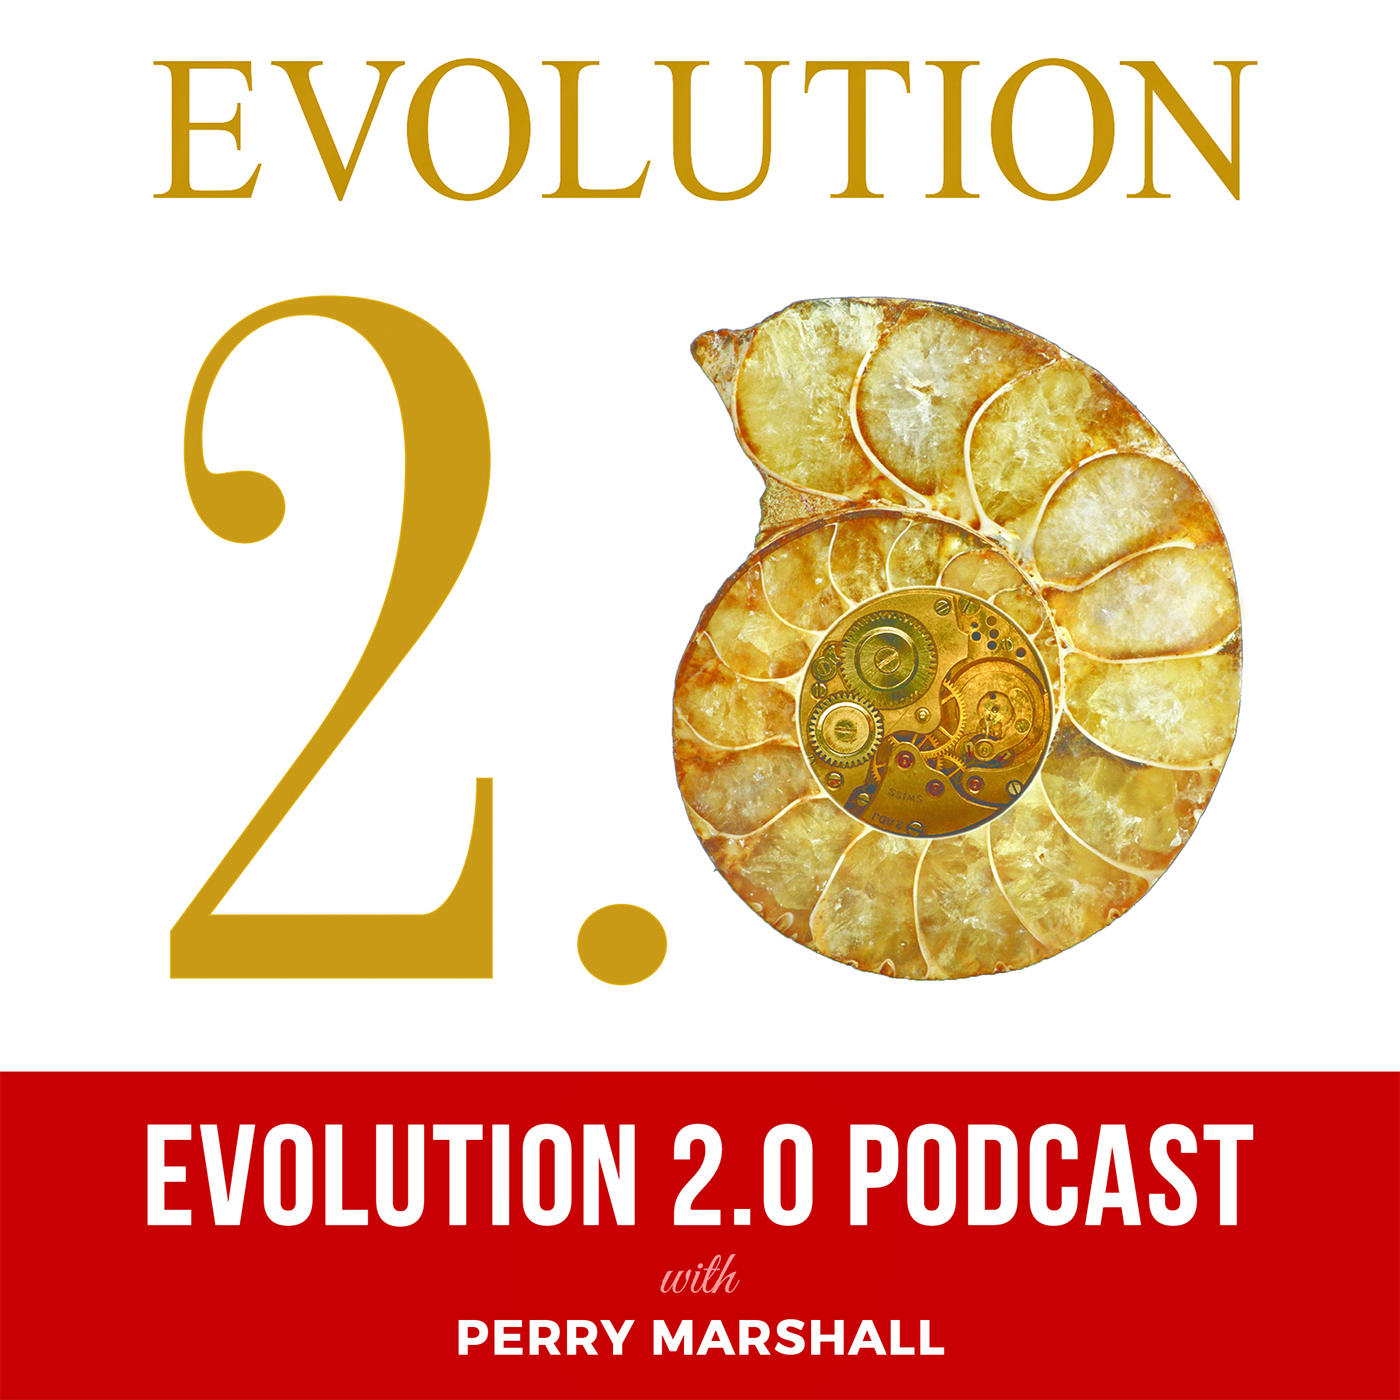 Evolution 2.0 Podcast